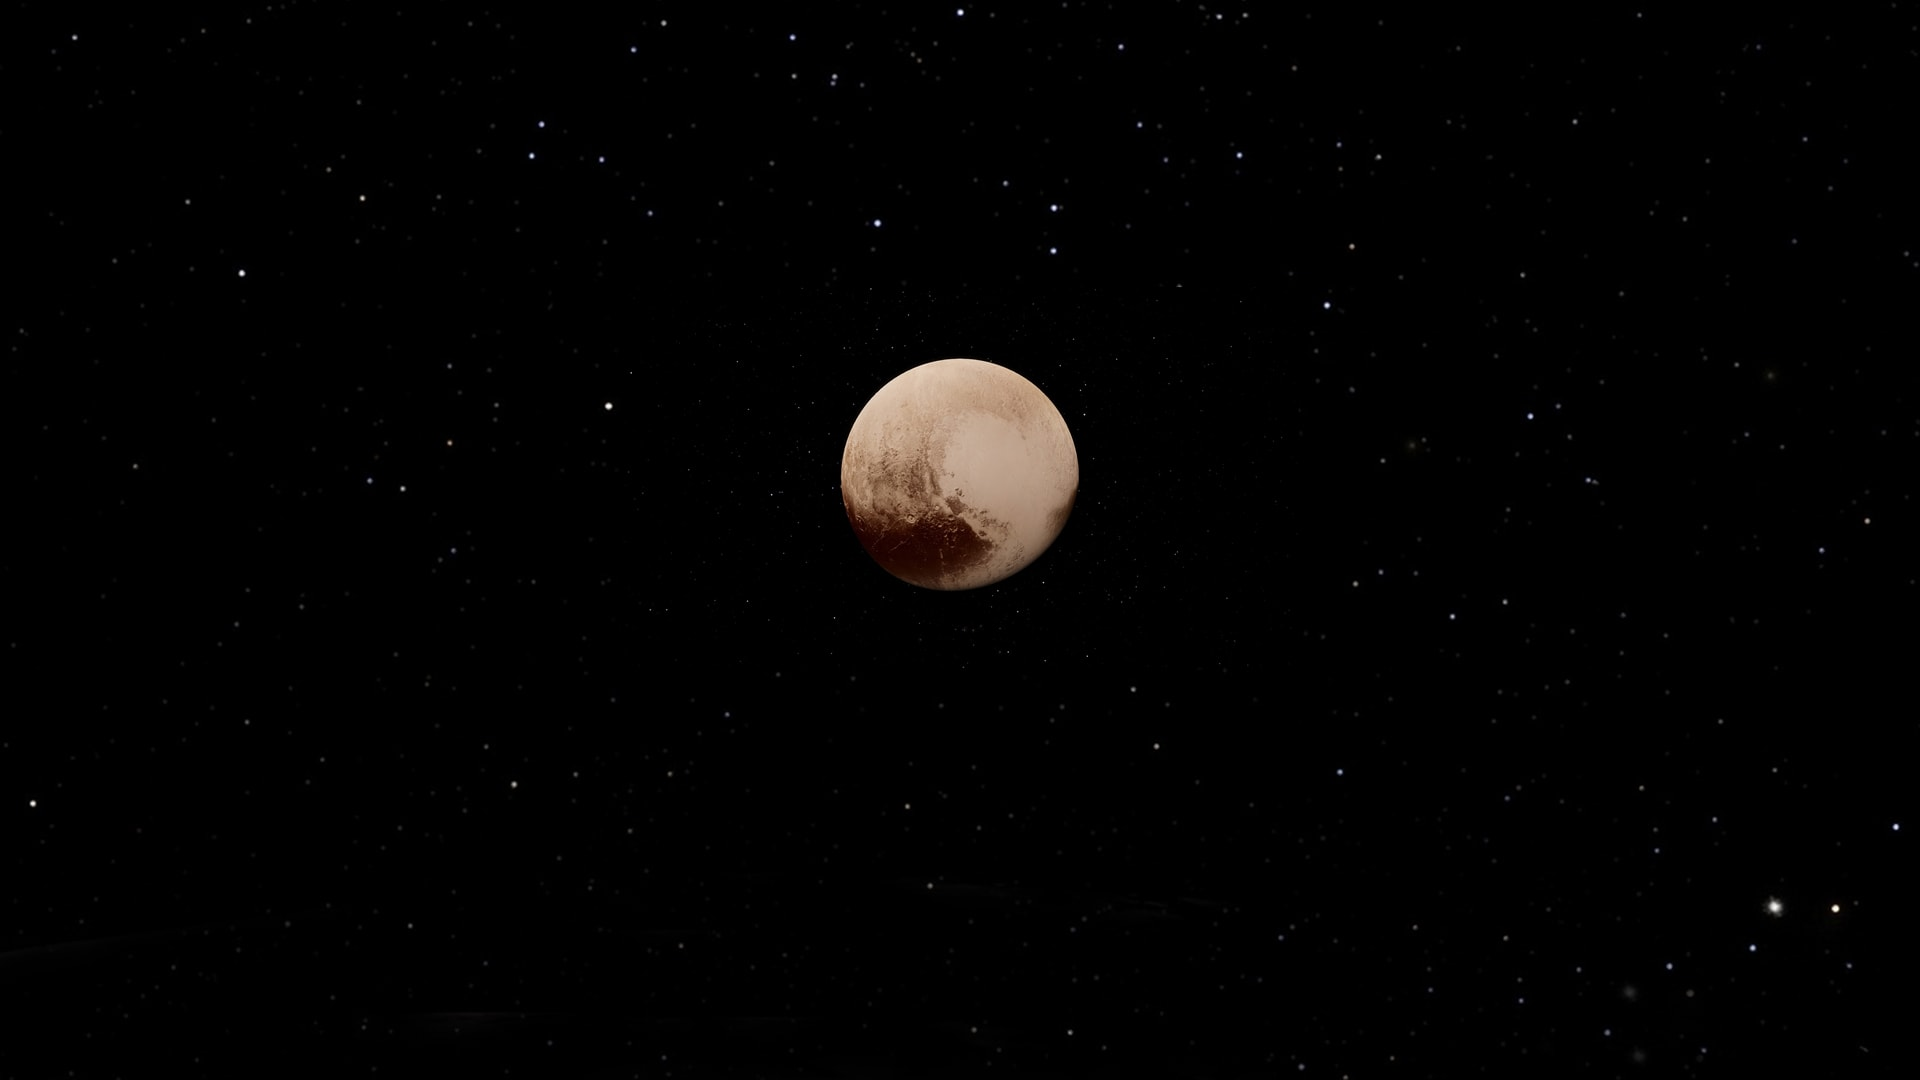 pluto demoted no longer a planet in highly controversial - HD1920×1080